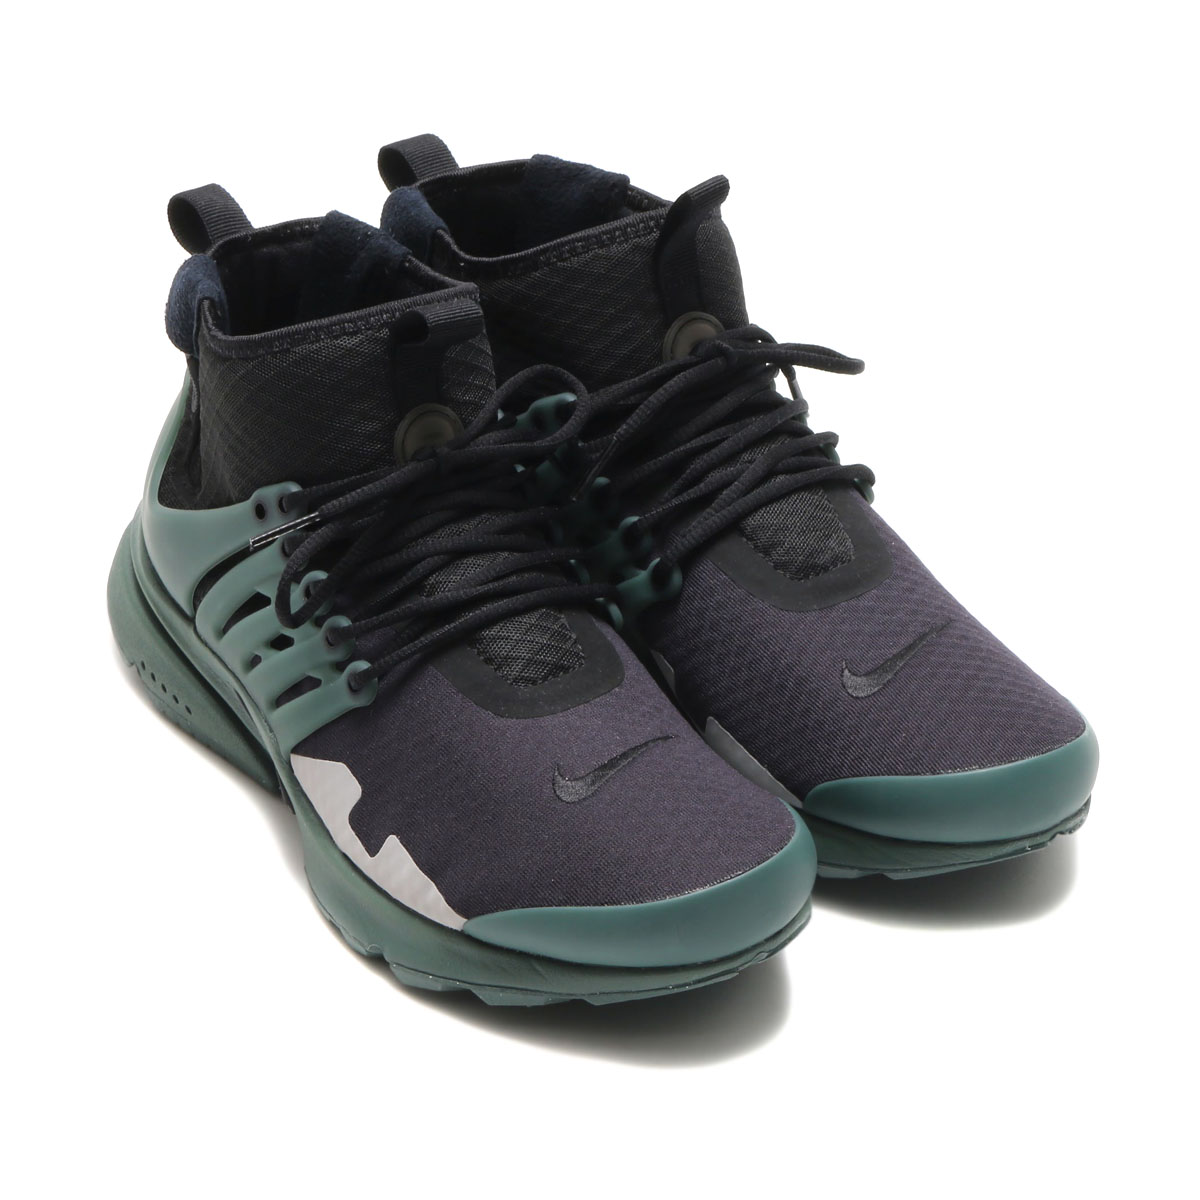 dcddc52aed41 atmos pink  It is ♪ NIKE AIR PRESTO MID SP (Kie Ney apr strike mid ...